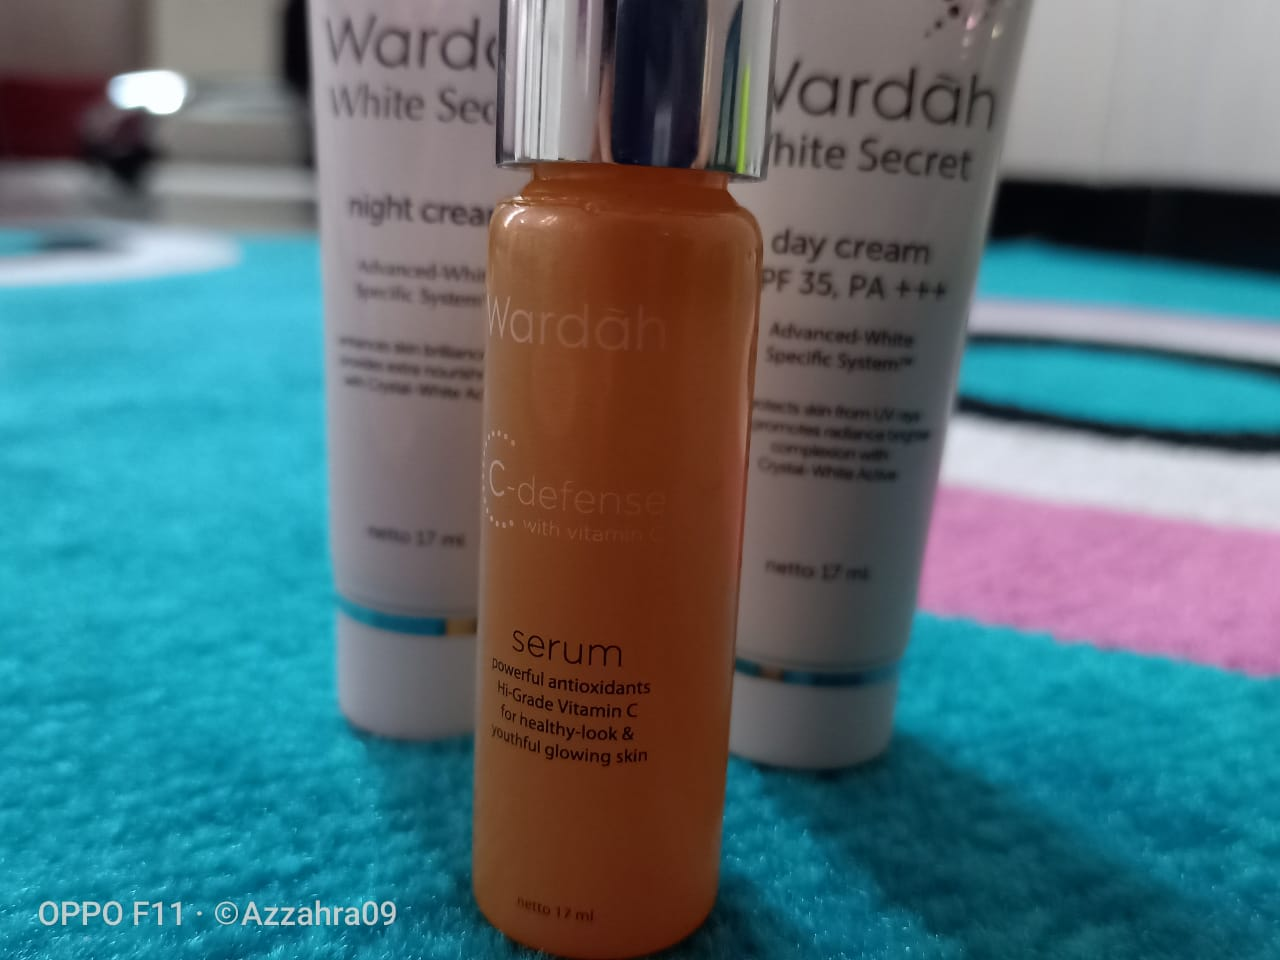 serum wardah, serum wardah agar glowing, serum wardah vitamin C, serum wardah shite secret